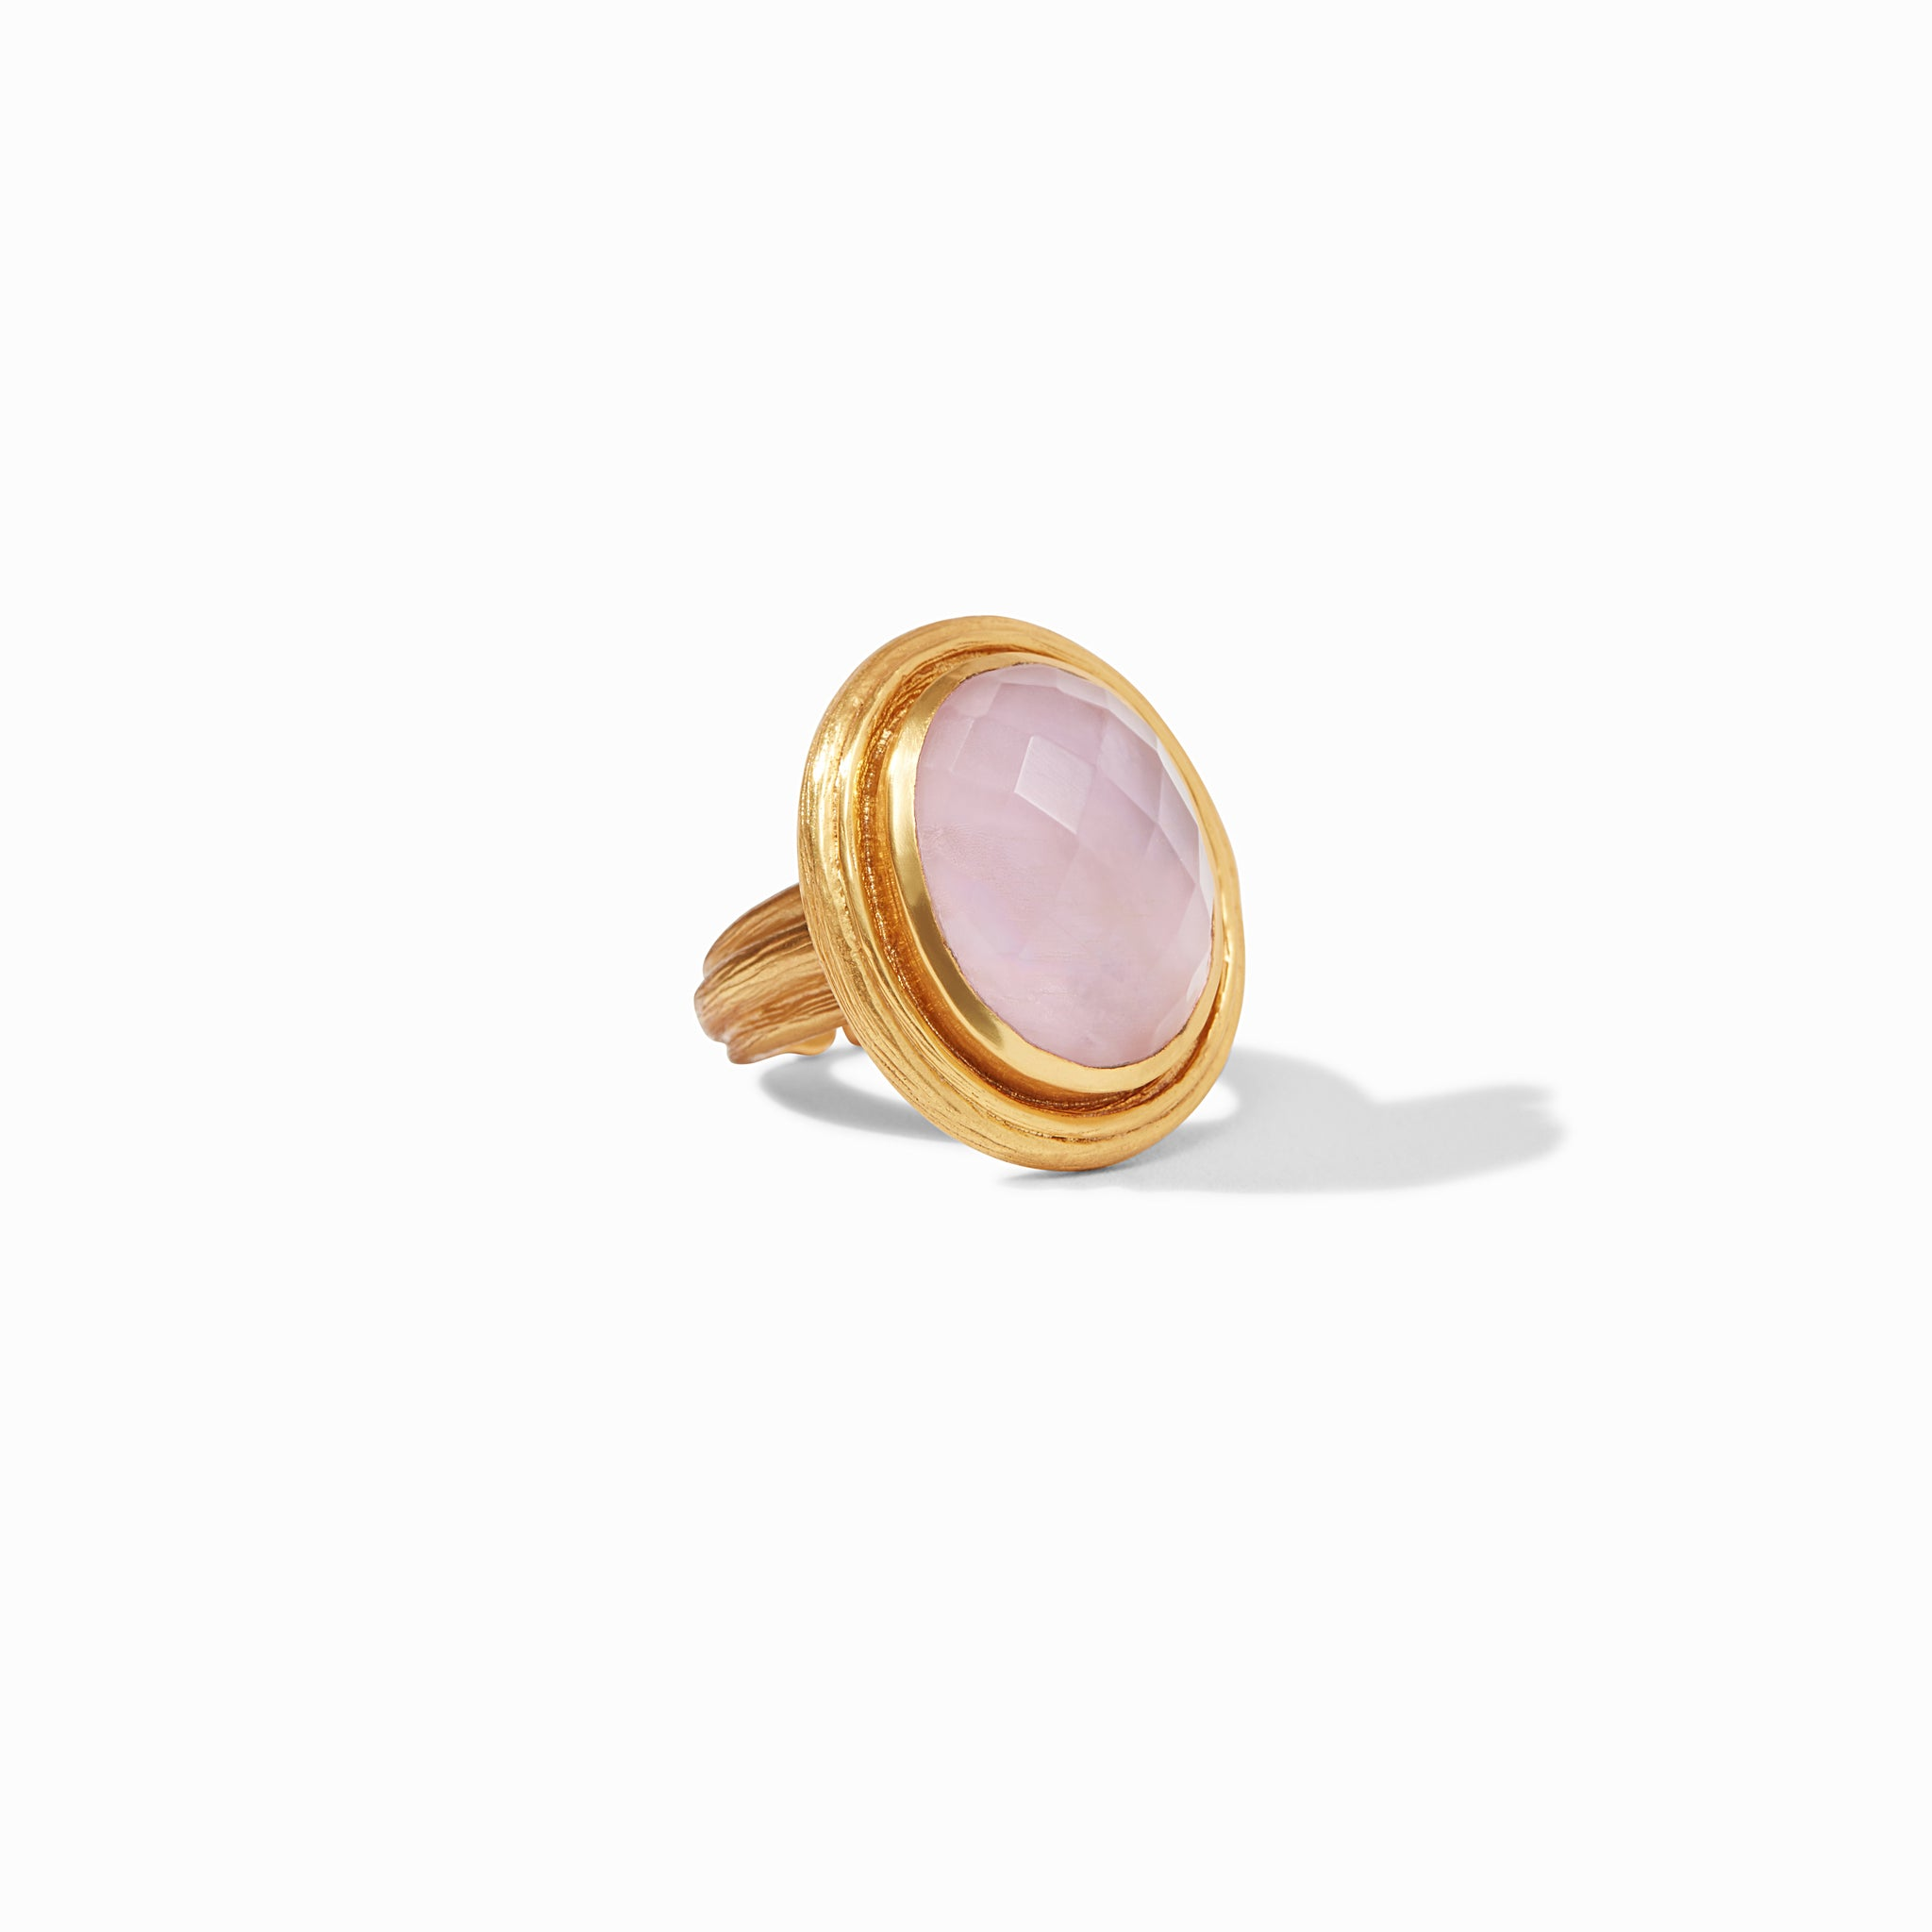 Barcelona Statement Ring